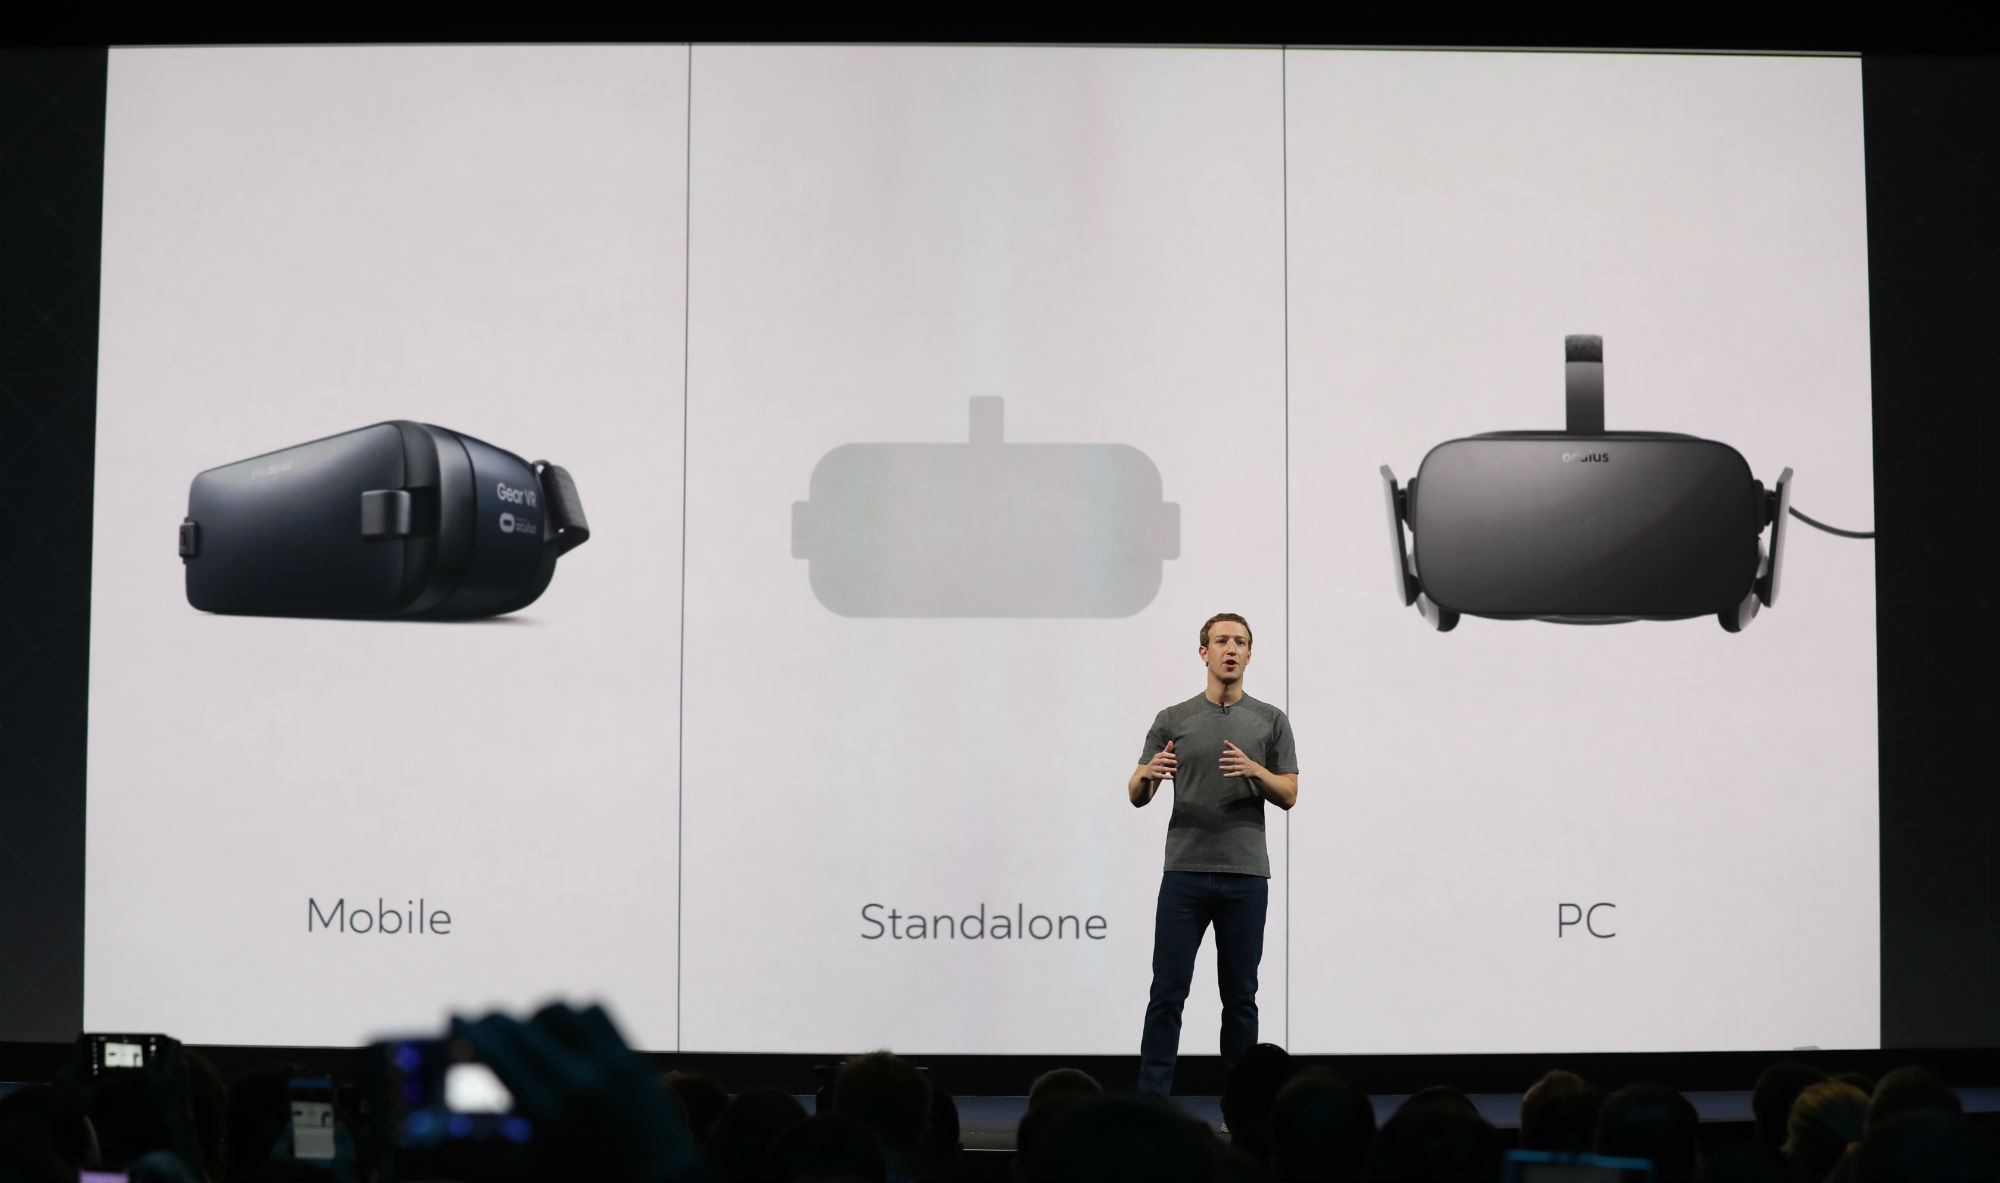 Facebook's Future Is A Standalone VR Headset That Connects You With Friends And Family